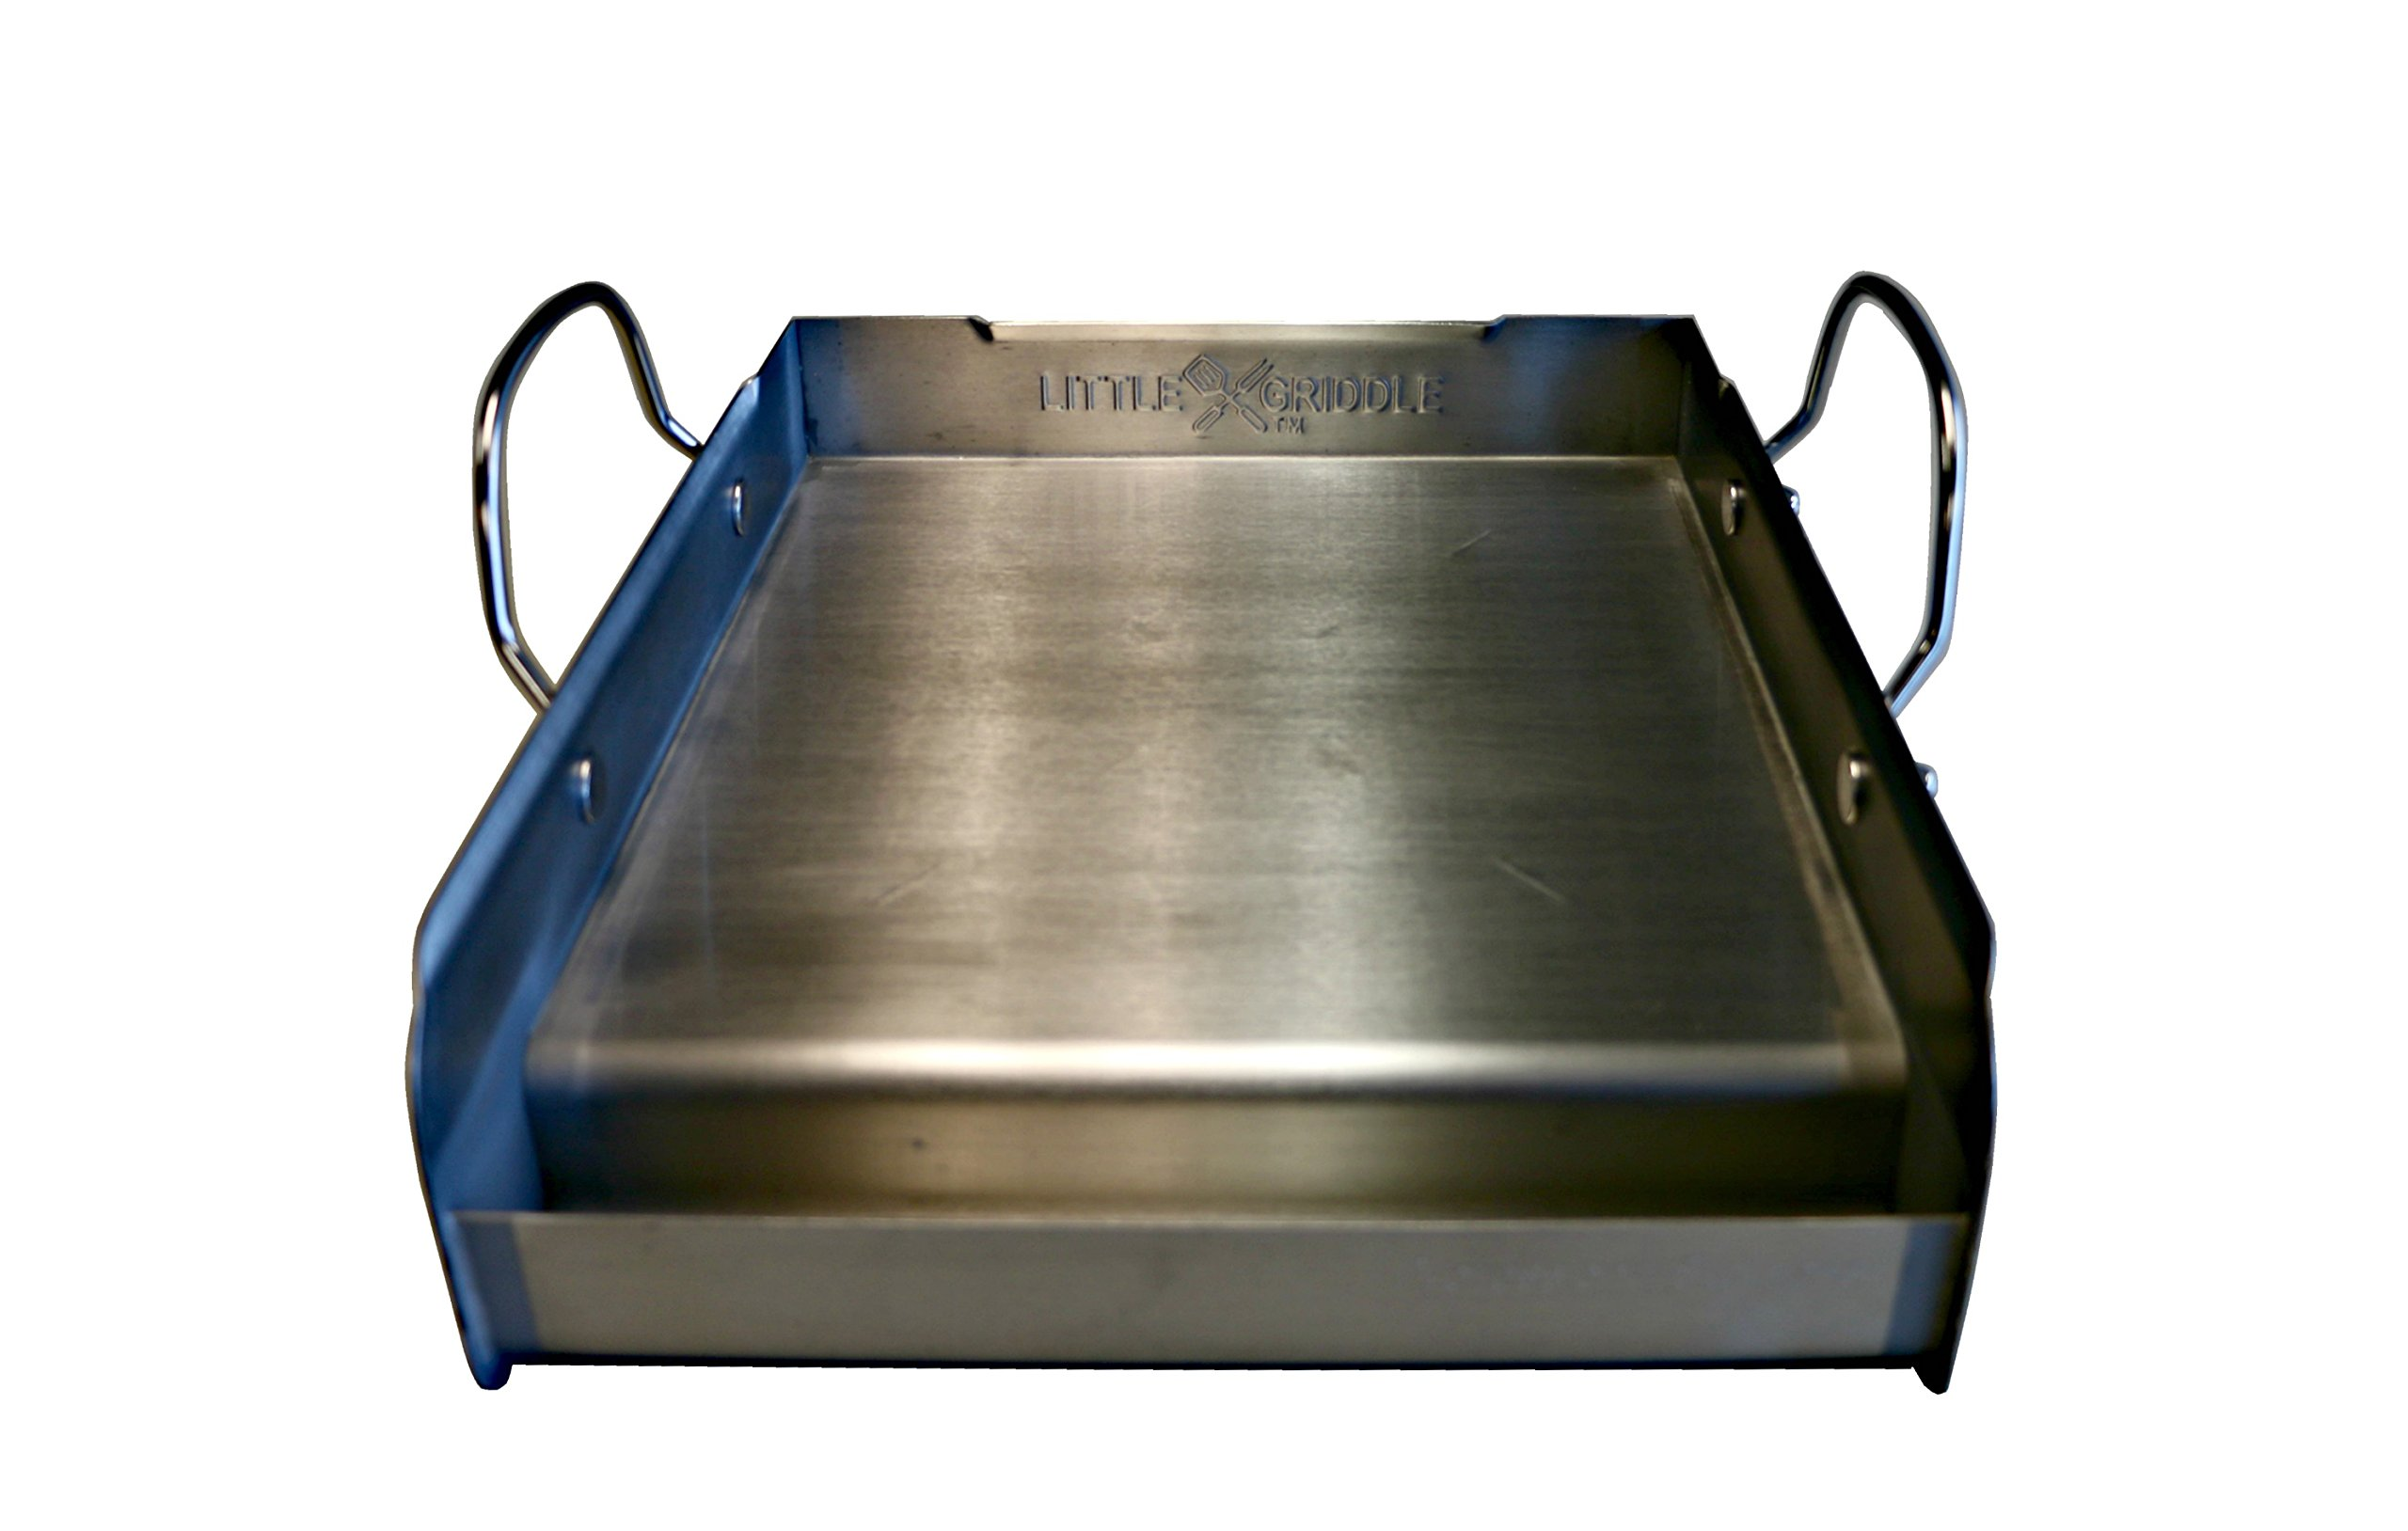 griddle-Q GQ120 100% Stainless Steel Medium-Sized Professional Griddle with Even Heating Bracing and Removable Handles for Charcoal/Gas Grills, Camping, Tailgating, and Parties (14''x16''x6.5'') by Little Griddle